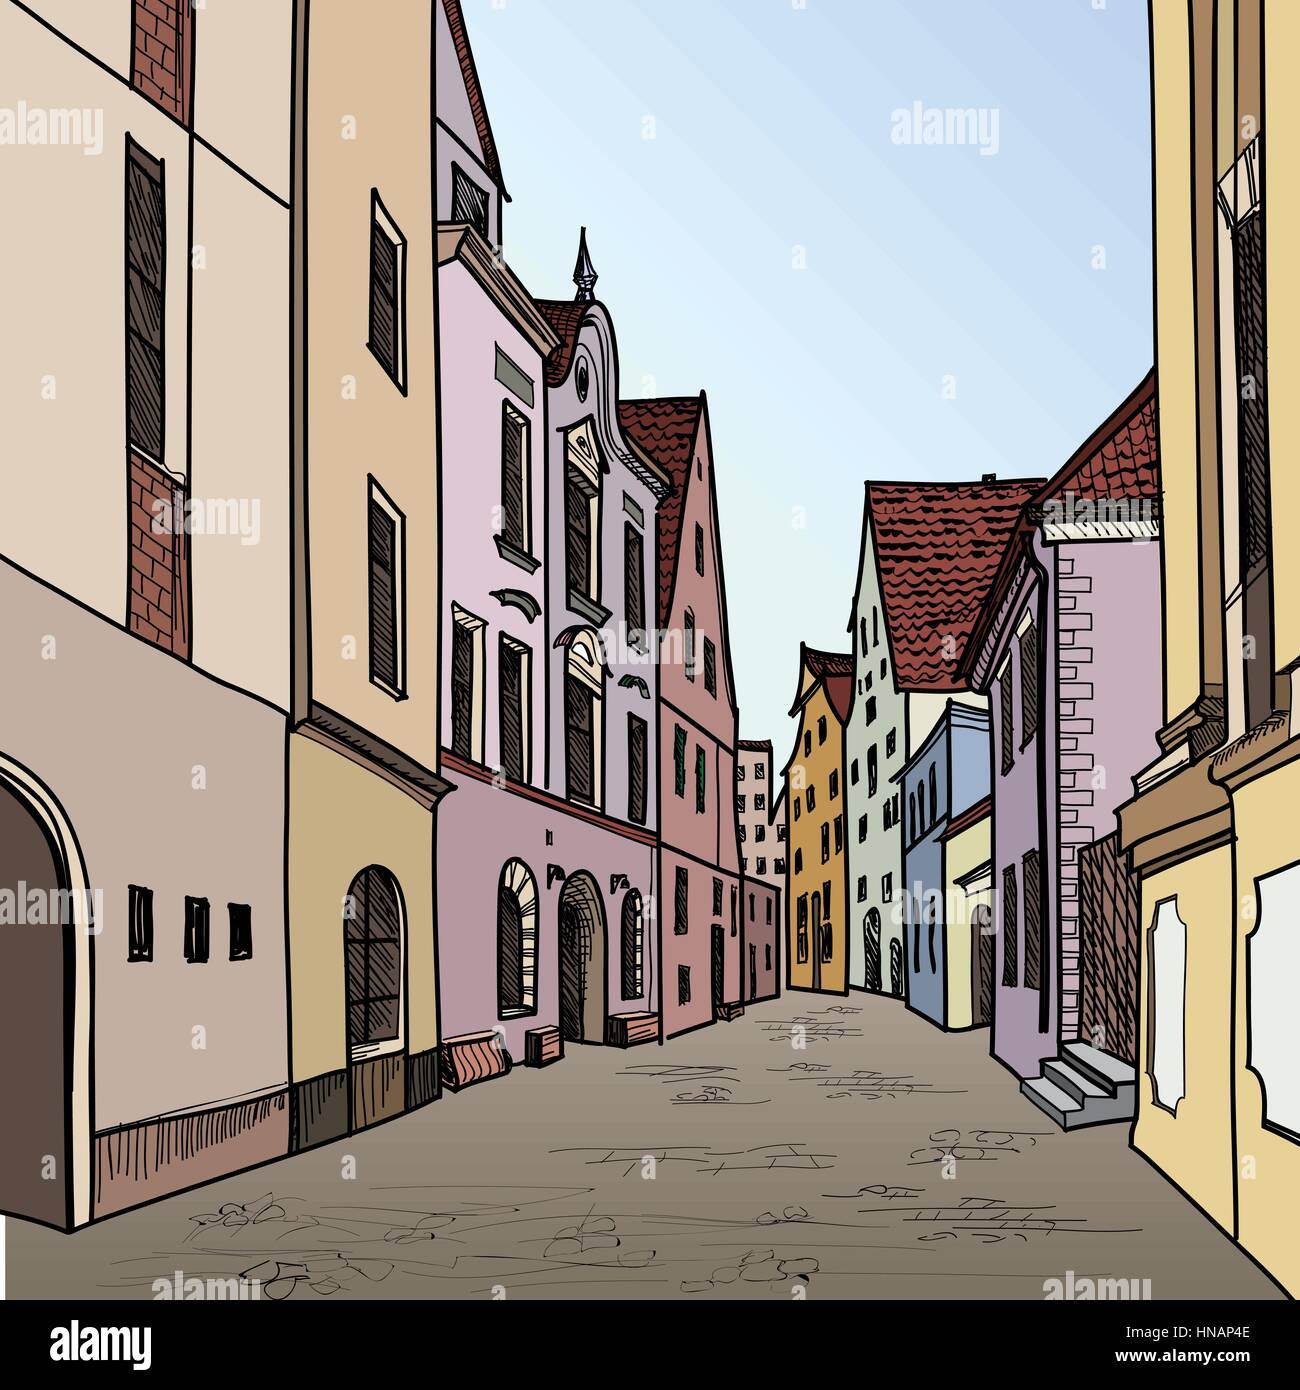 Old town. Pedestrian street in the old european city. Historic city street. Hand drawn sketch. Vector illustration. Stock Vector